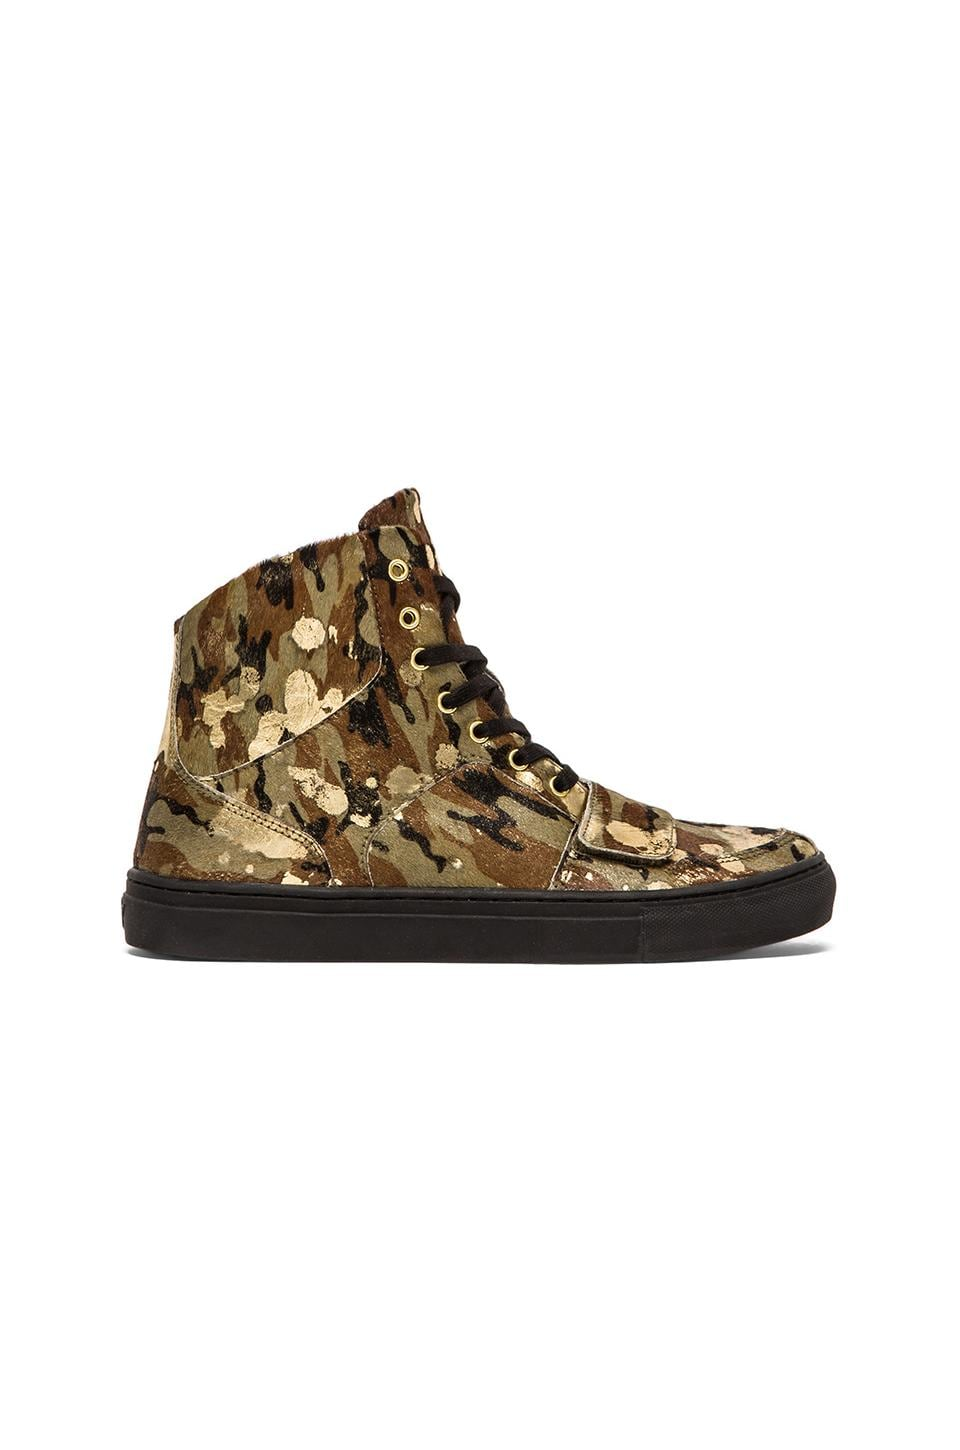 Creative Recreation Cesario X in Camo & Gold & Black